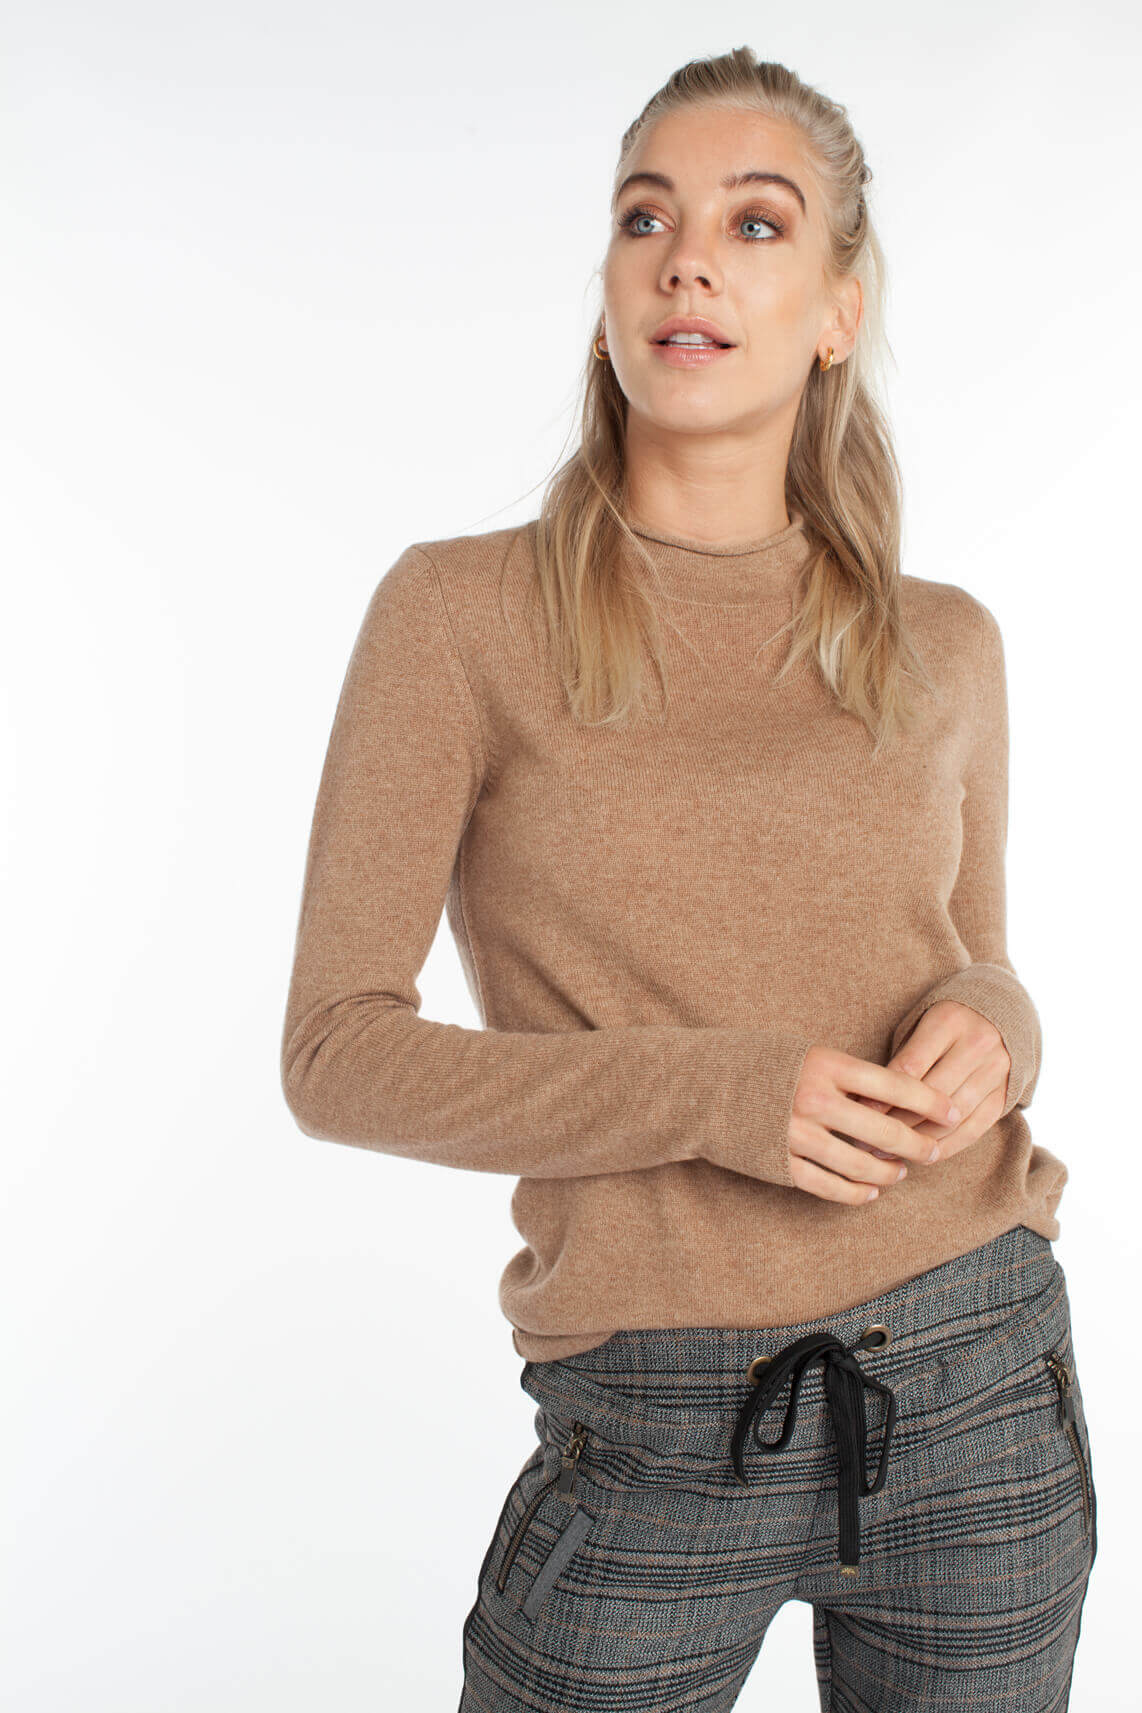 Anna Dames Cashmere pullover met col Bruin